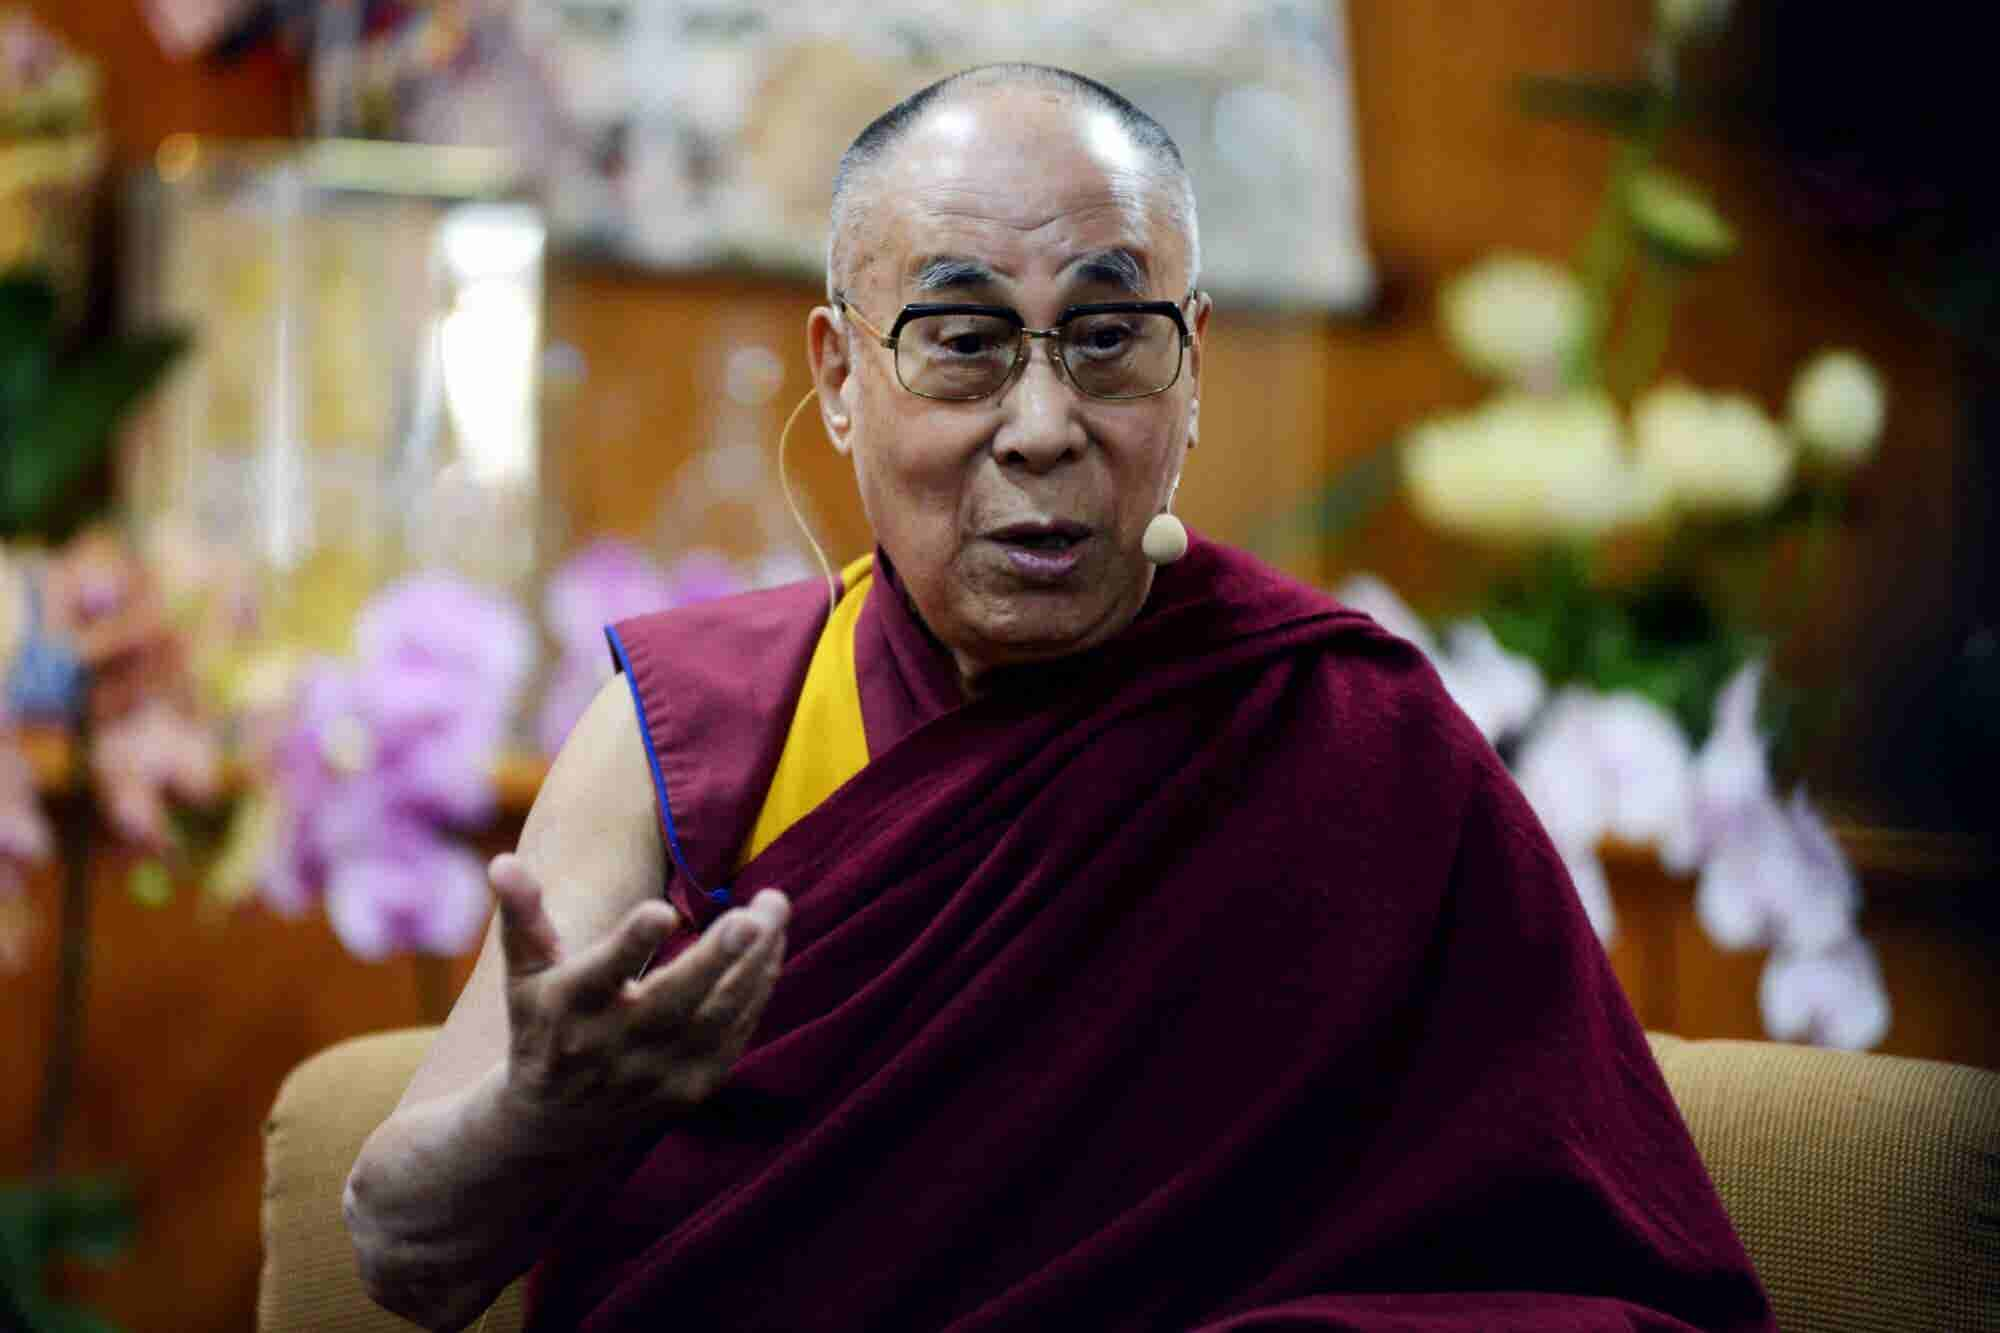 3 Observations About Compassion From the Dalai Lama That Could Change Your Approach to Entrepreneurship